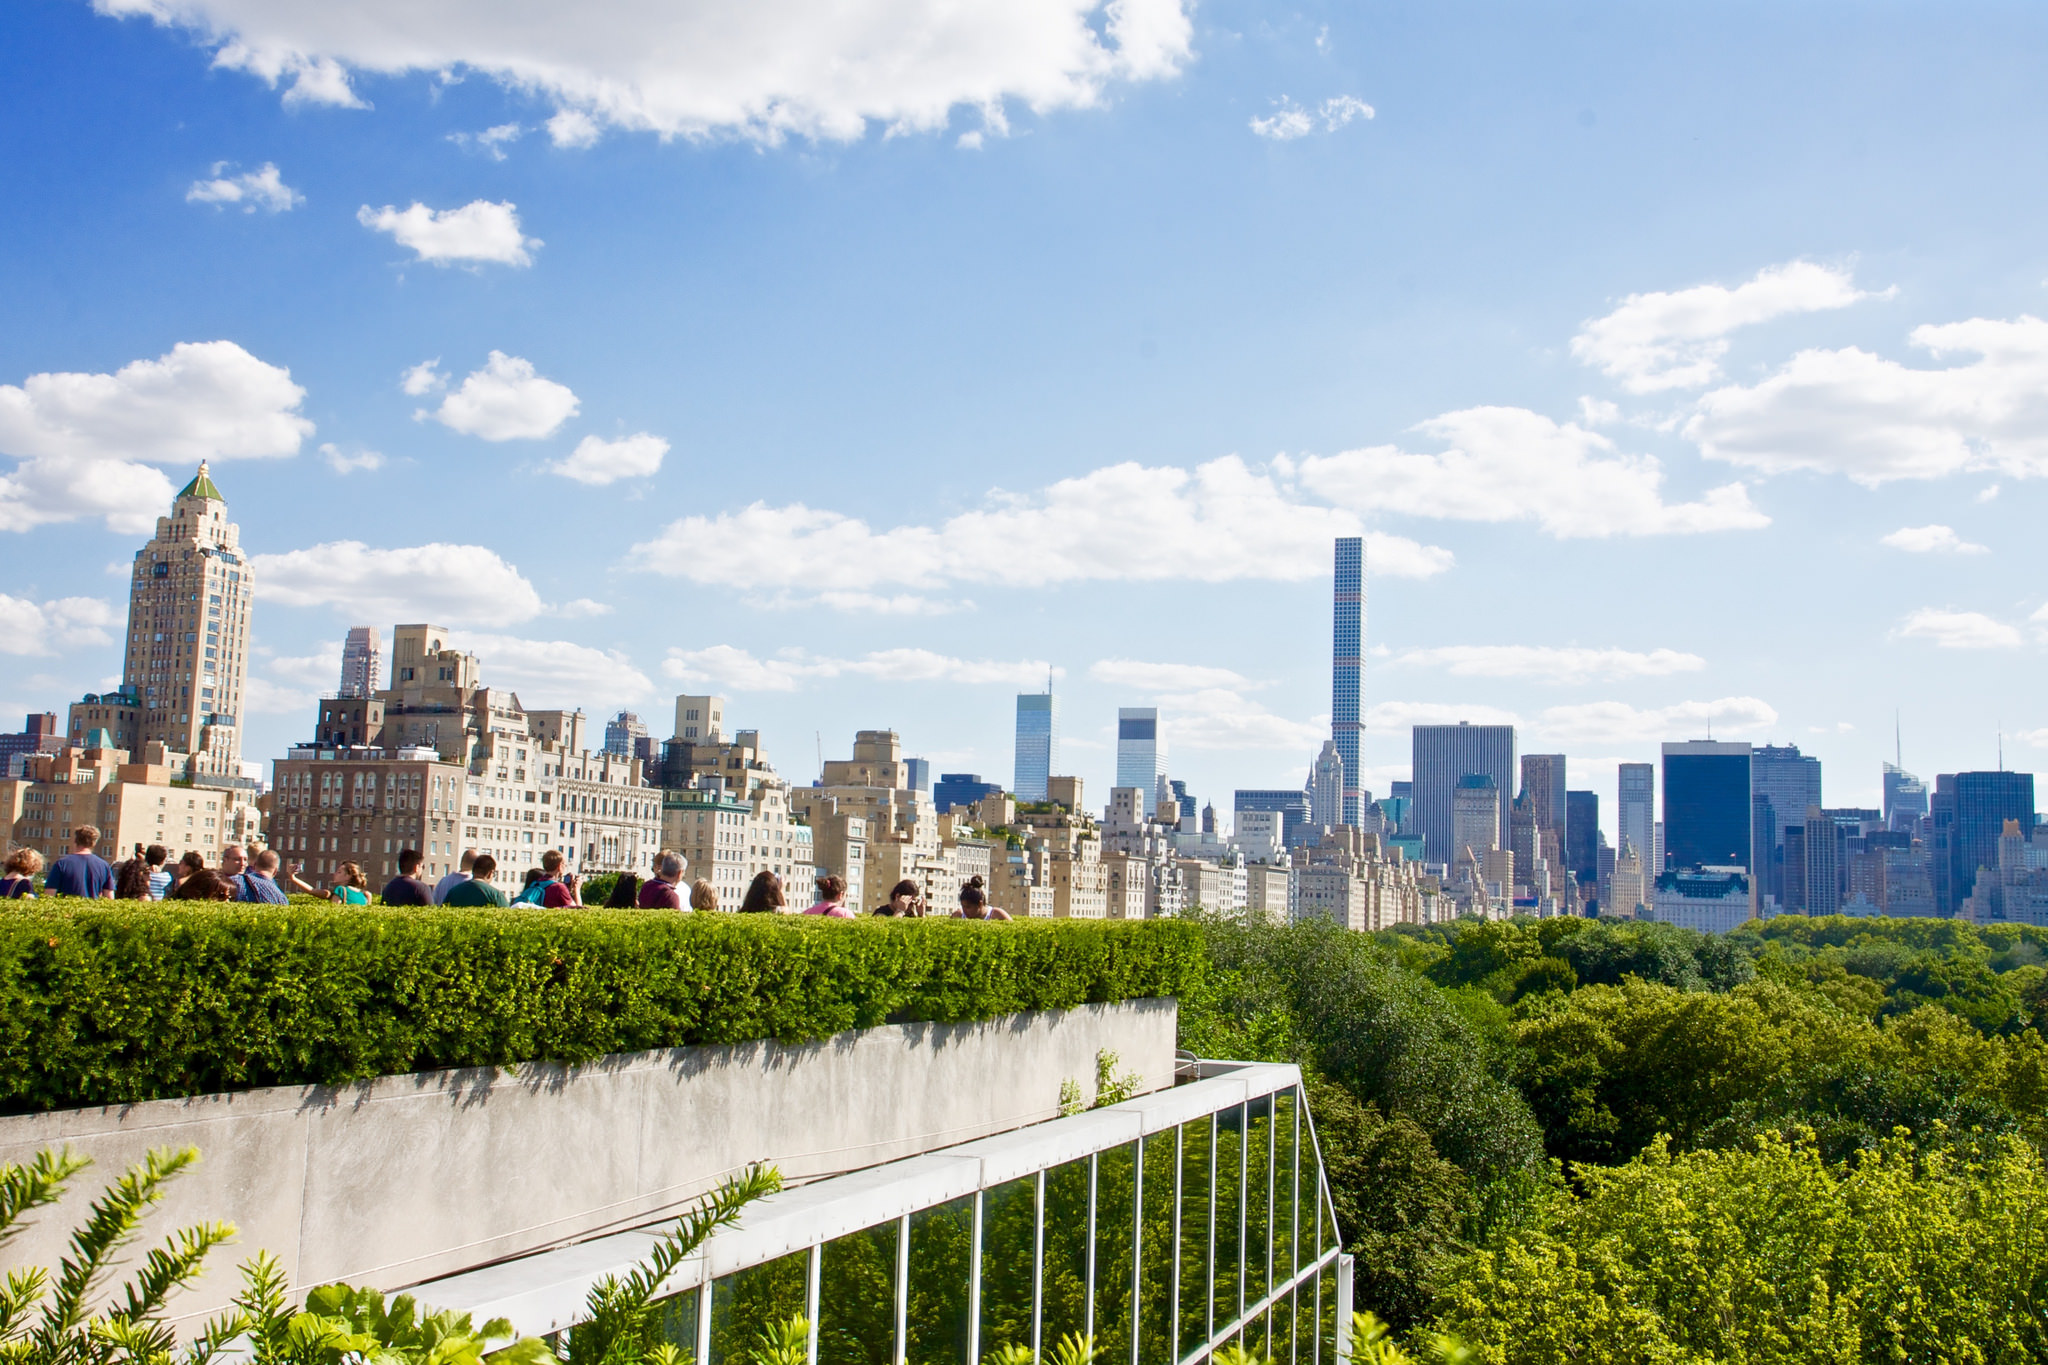 View of Central Park from The Met's Rooftop | © Lydia Liu/Flickr